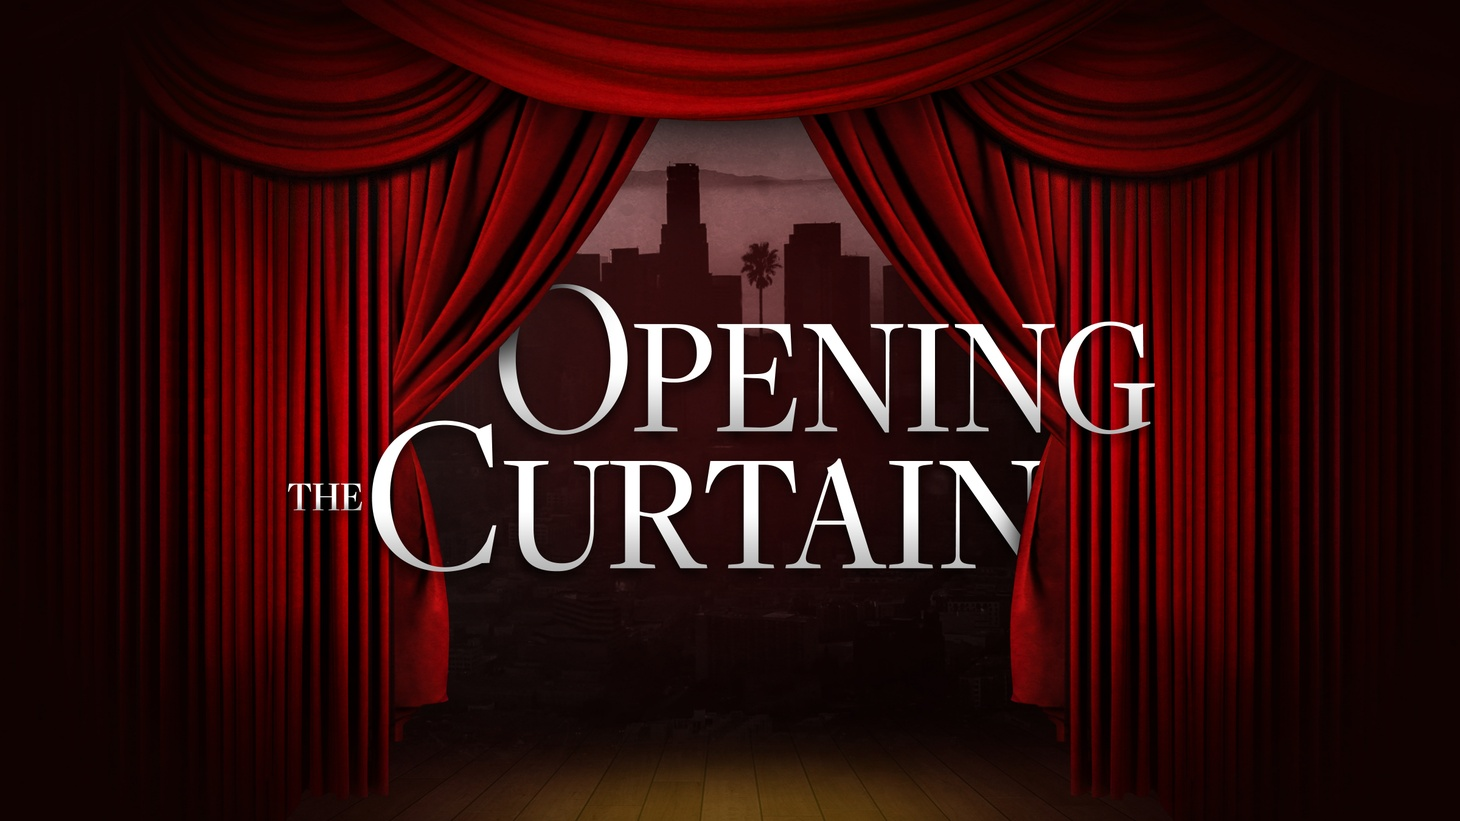 It's been said that the role of the theater is to synchronize the audience and the artists in time and space. Traditionally that's been pretty straight forward. Show up at the theater - the space - at 8 o'clock - the time - and we'll begin the show. When the curtain goes up we're all in that moment. Easy...